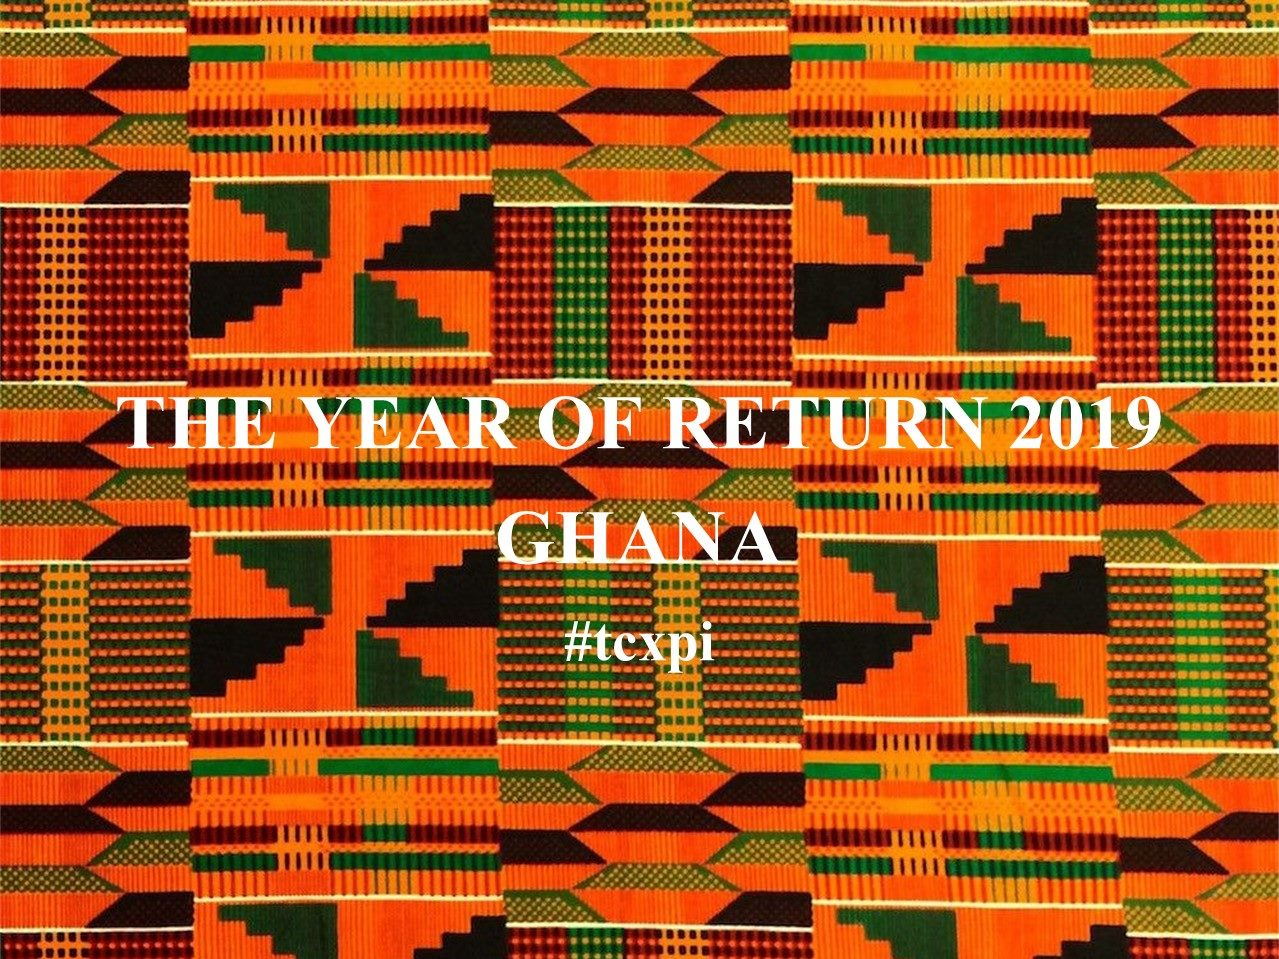 The Year Of Return 2019